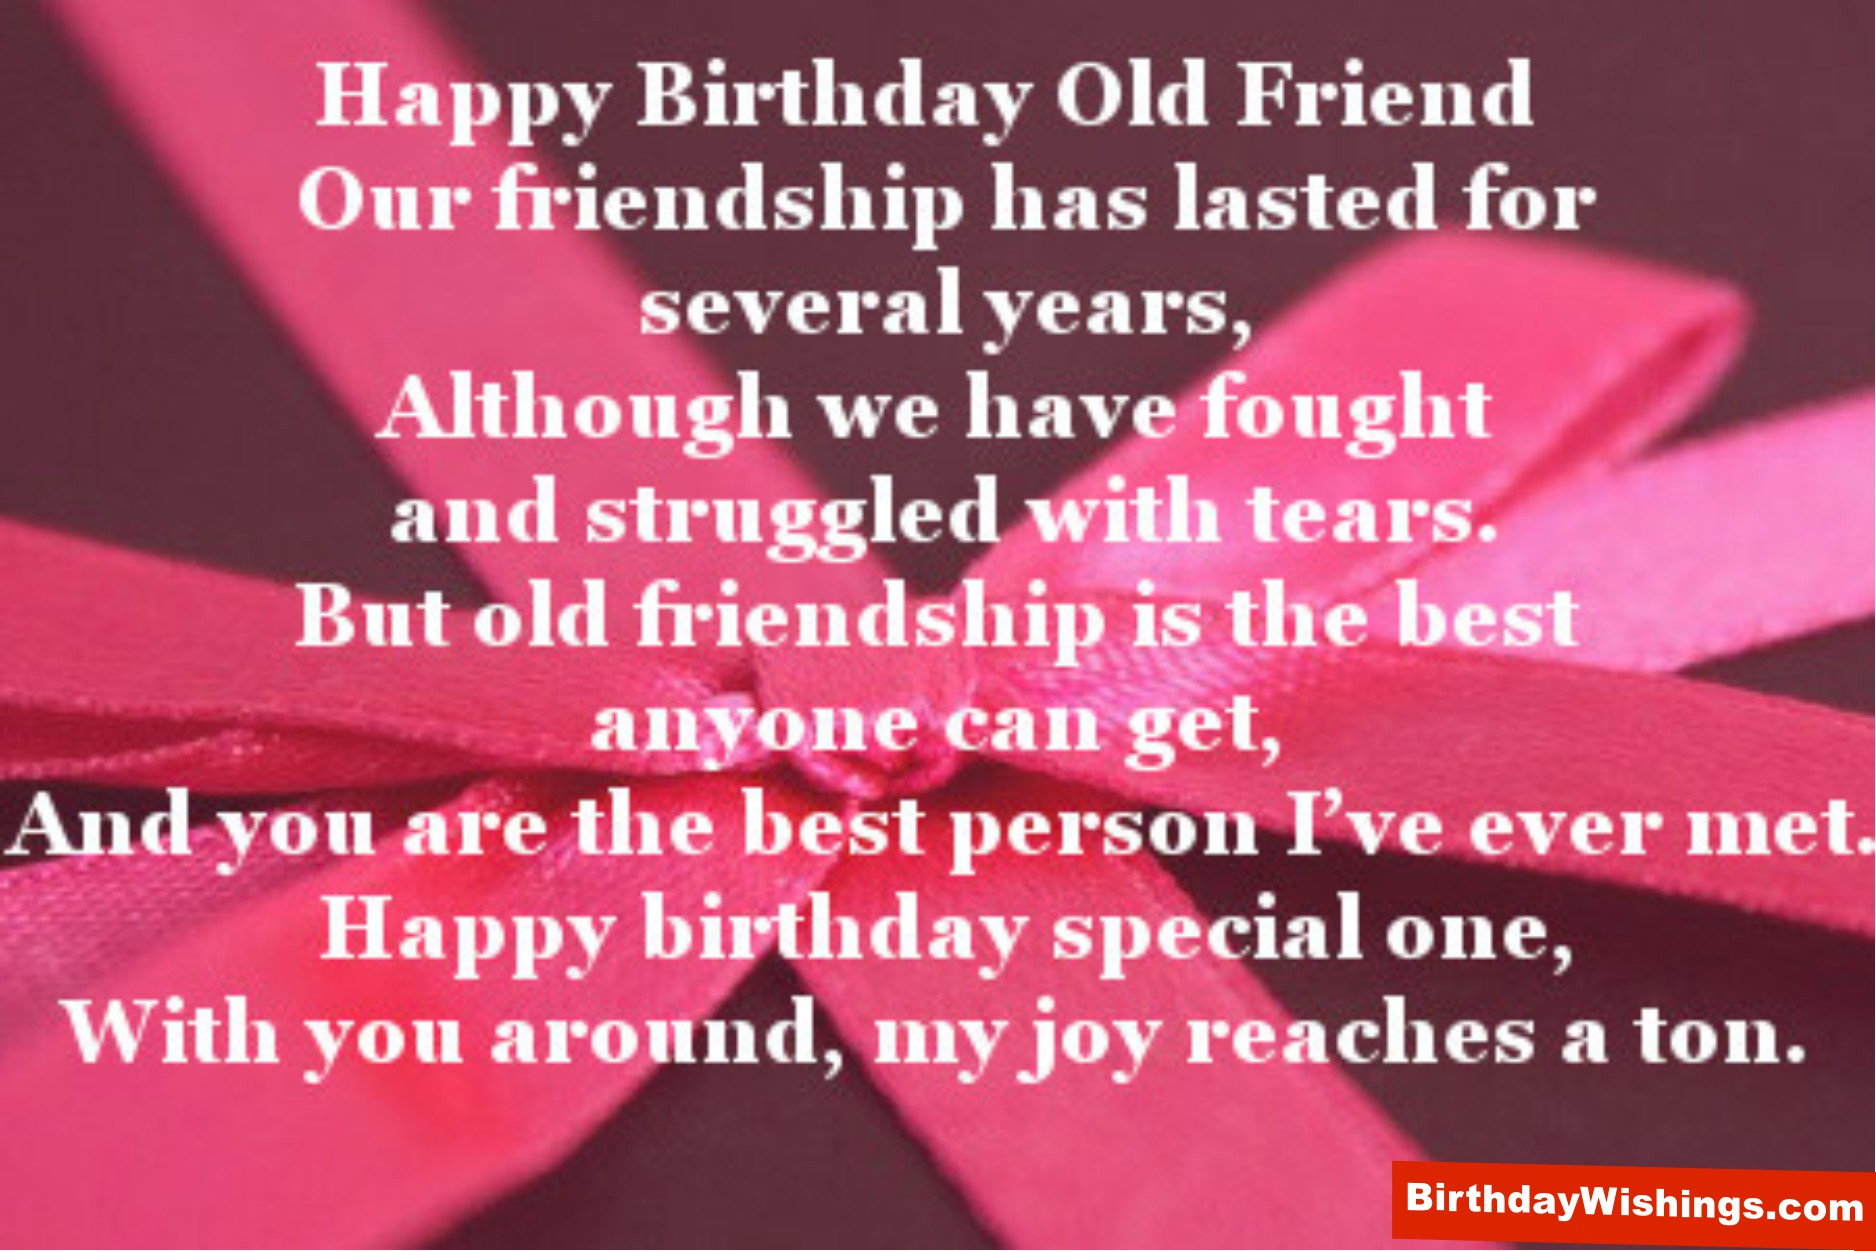 Birthday Poem For Old Friend - BirthdayWishings.com